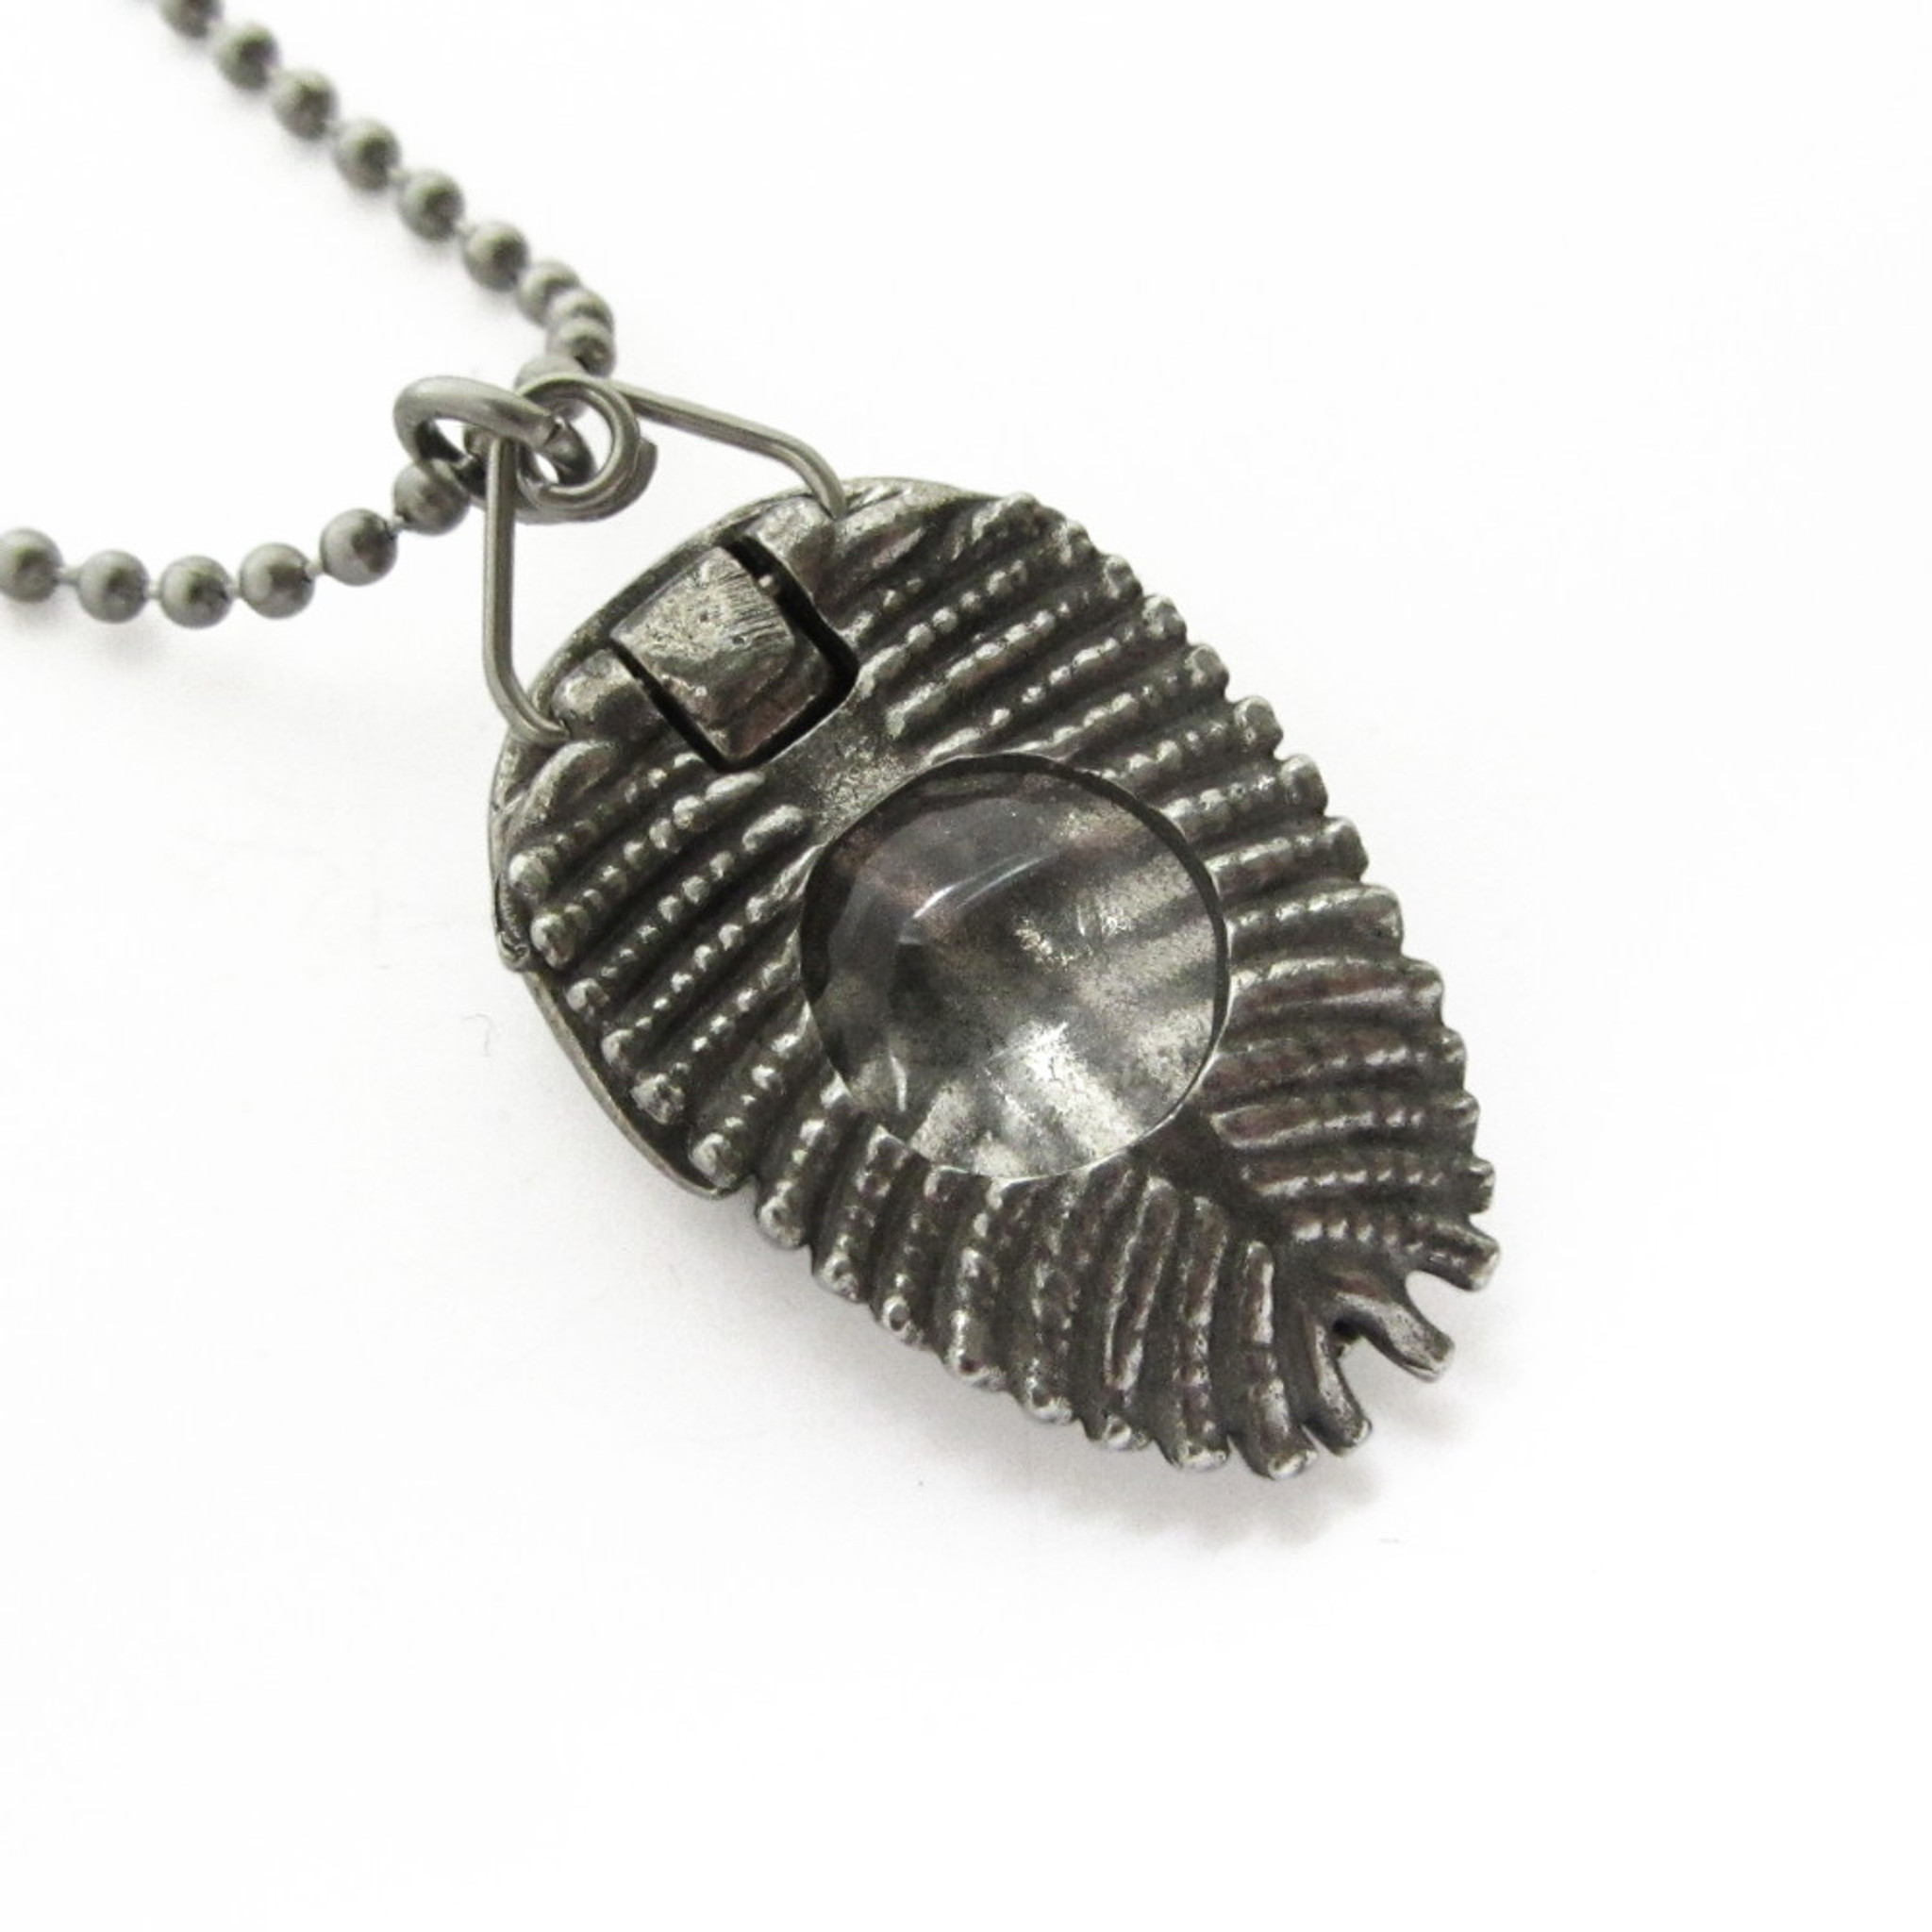 Trilobite pendant with magnifier taylorcustom trilobite pendant with built in magnifier mozeypictures Image collections